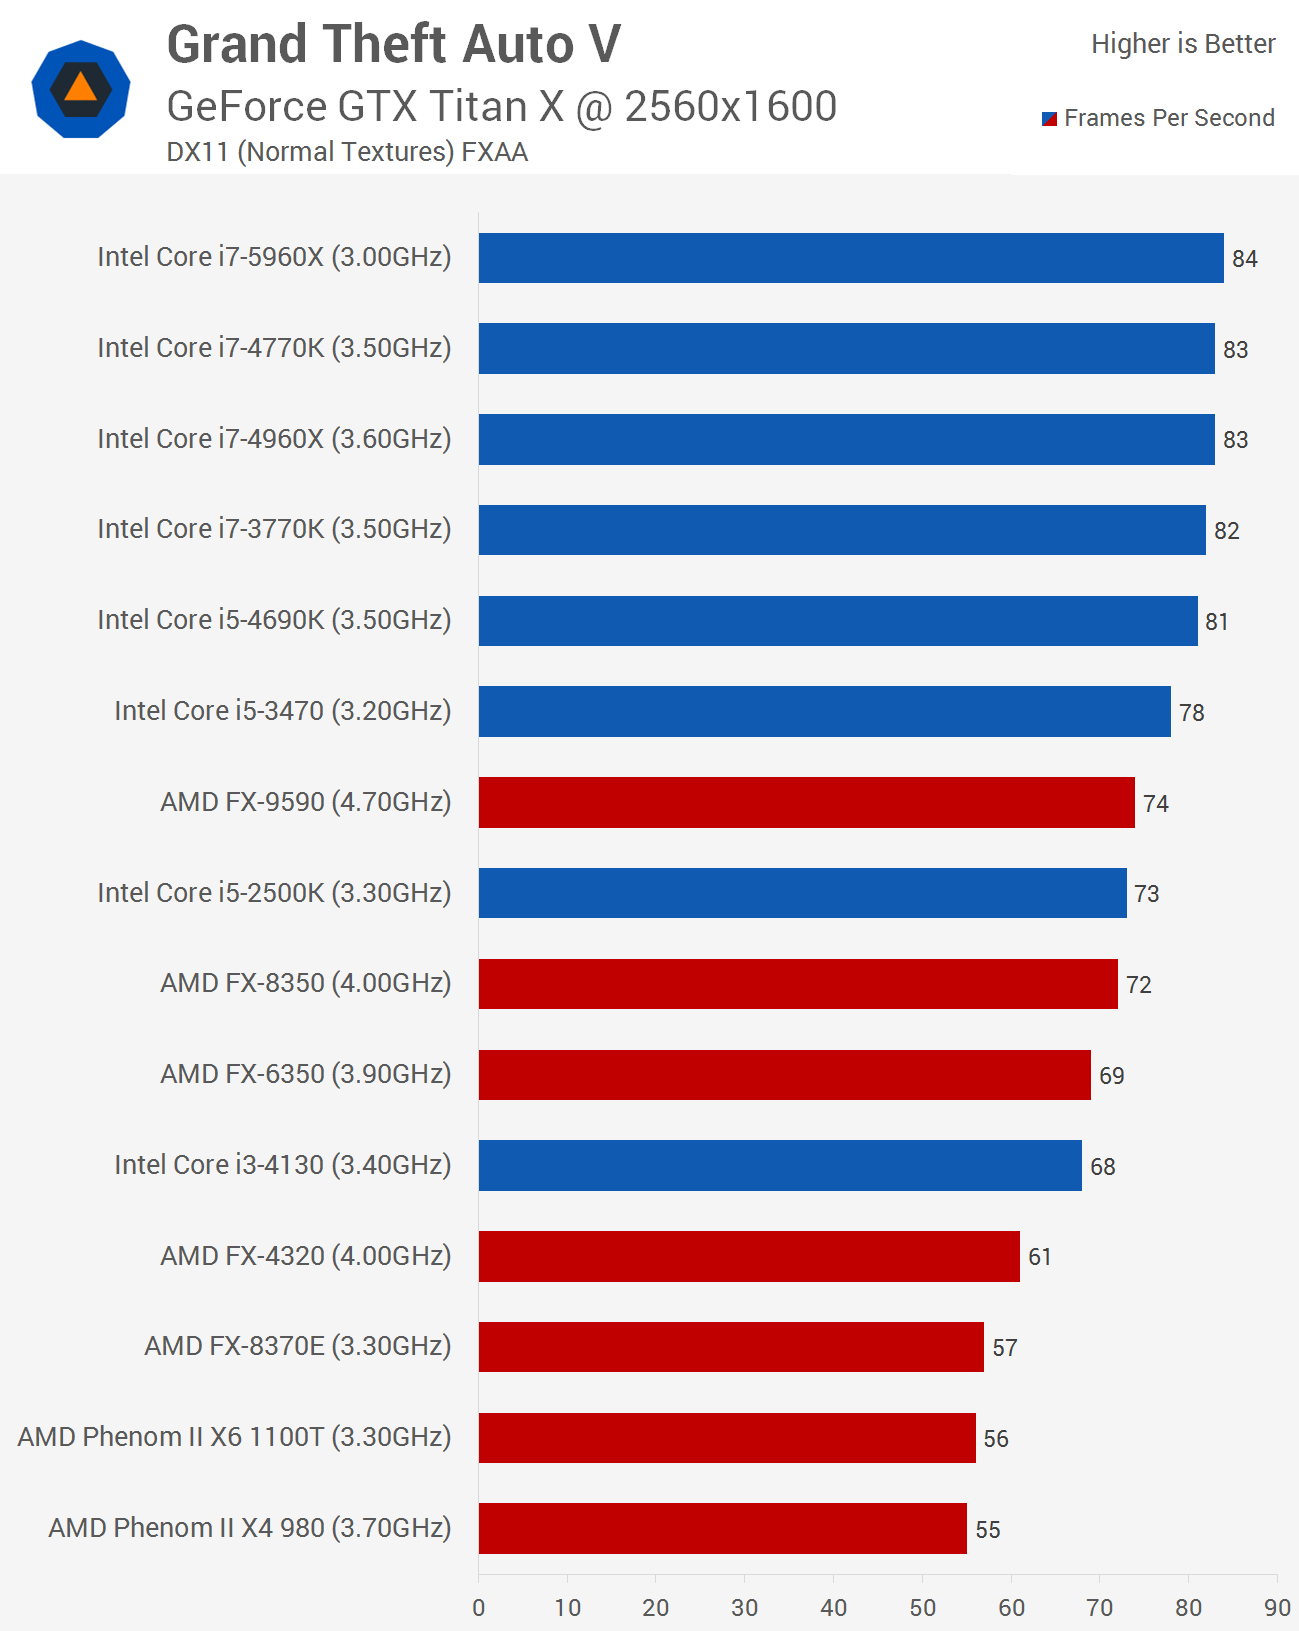 Grand Theft Auto V Benchmarked: Graphics & CPU Performance > CPU